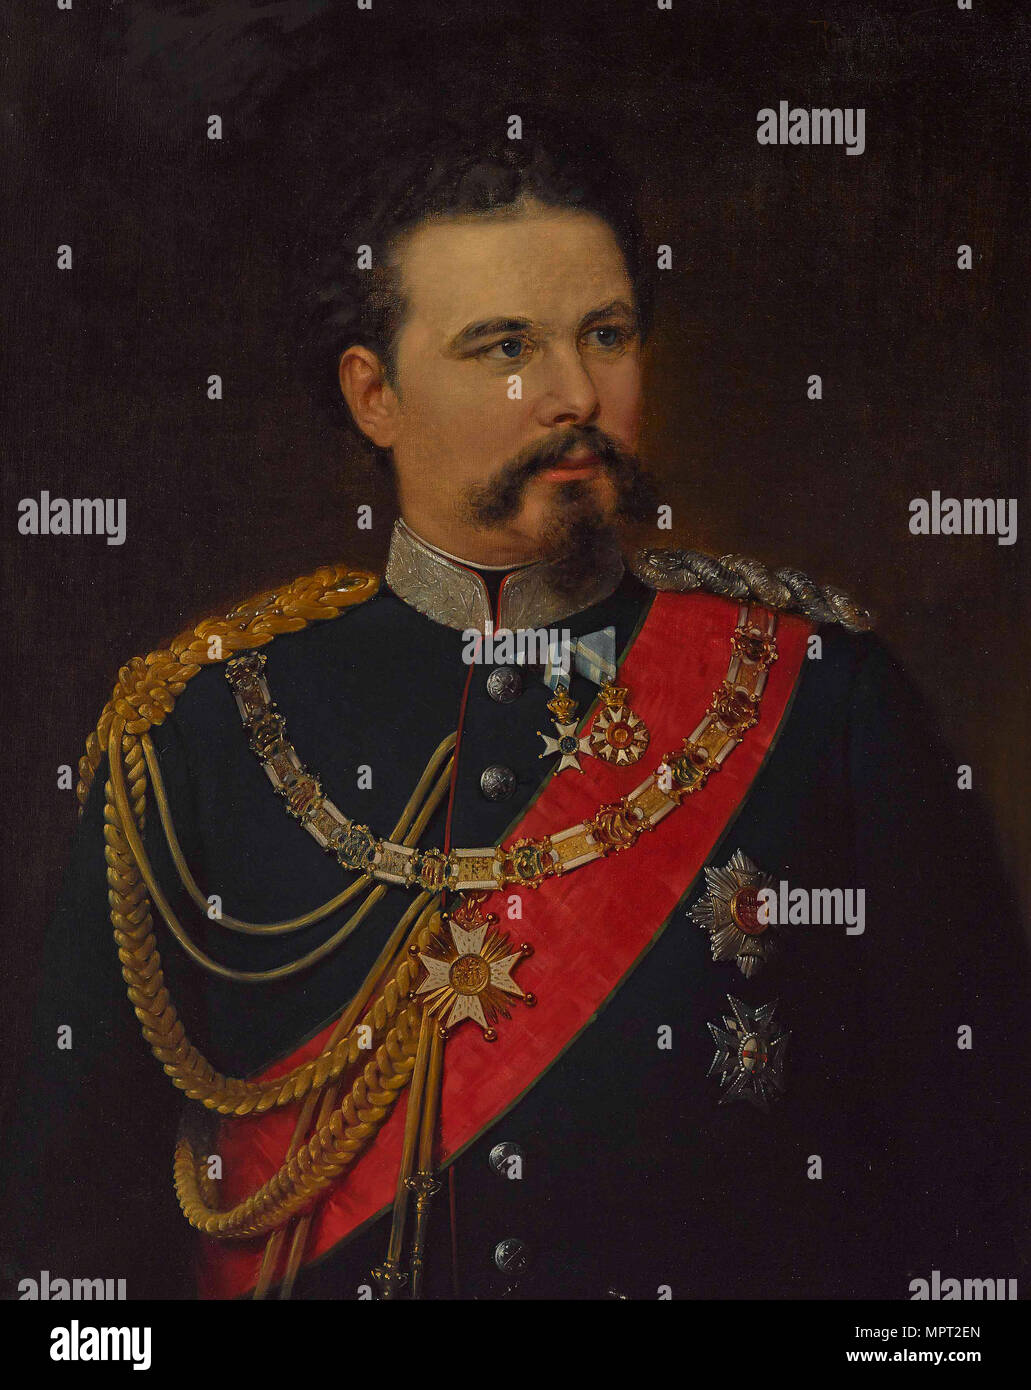 Portrait of Ludwig II of Bavaria (1845-1886), 1883. - Stock Image